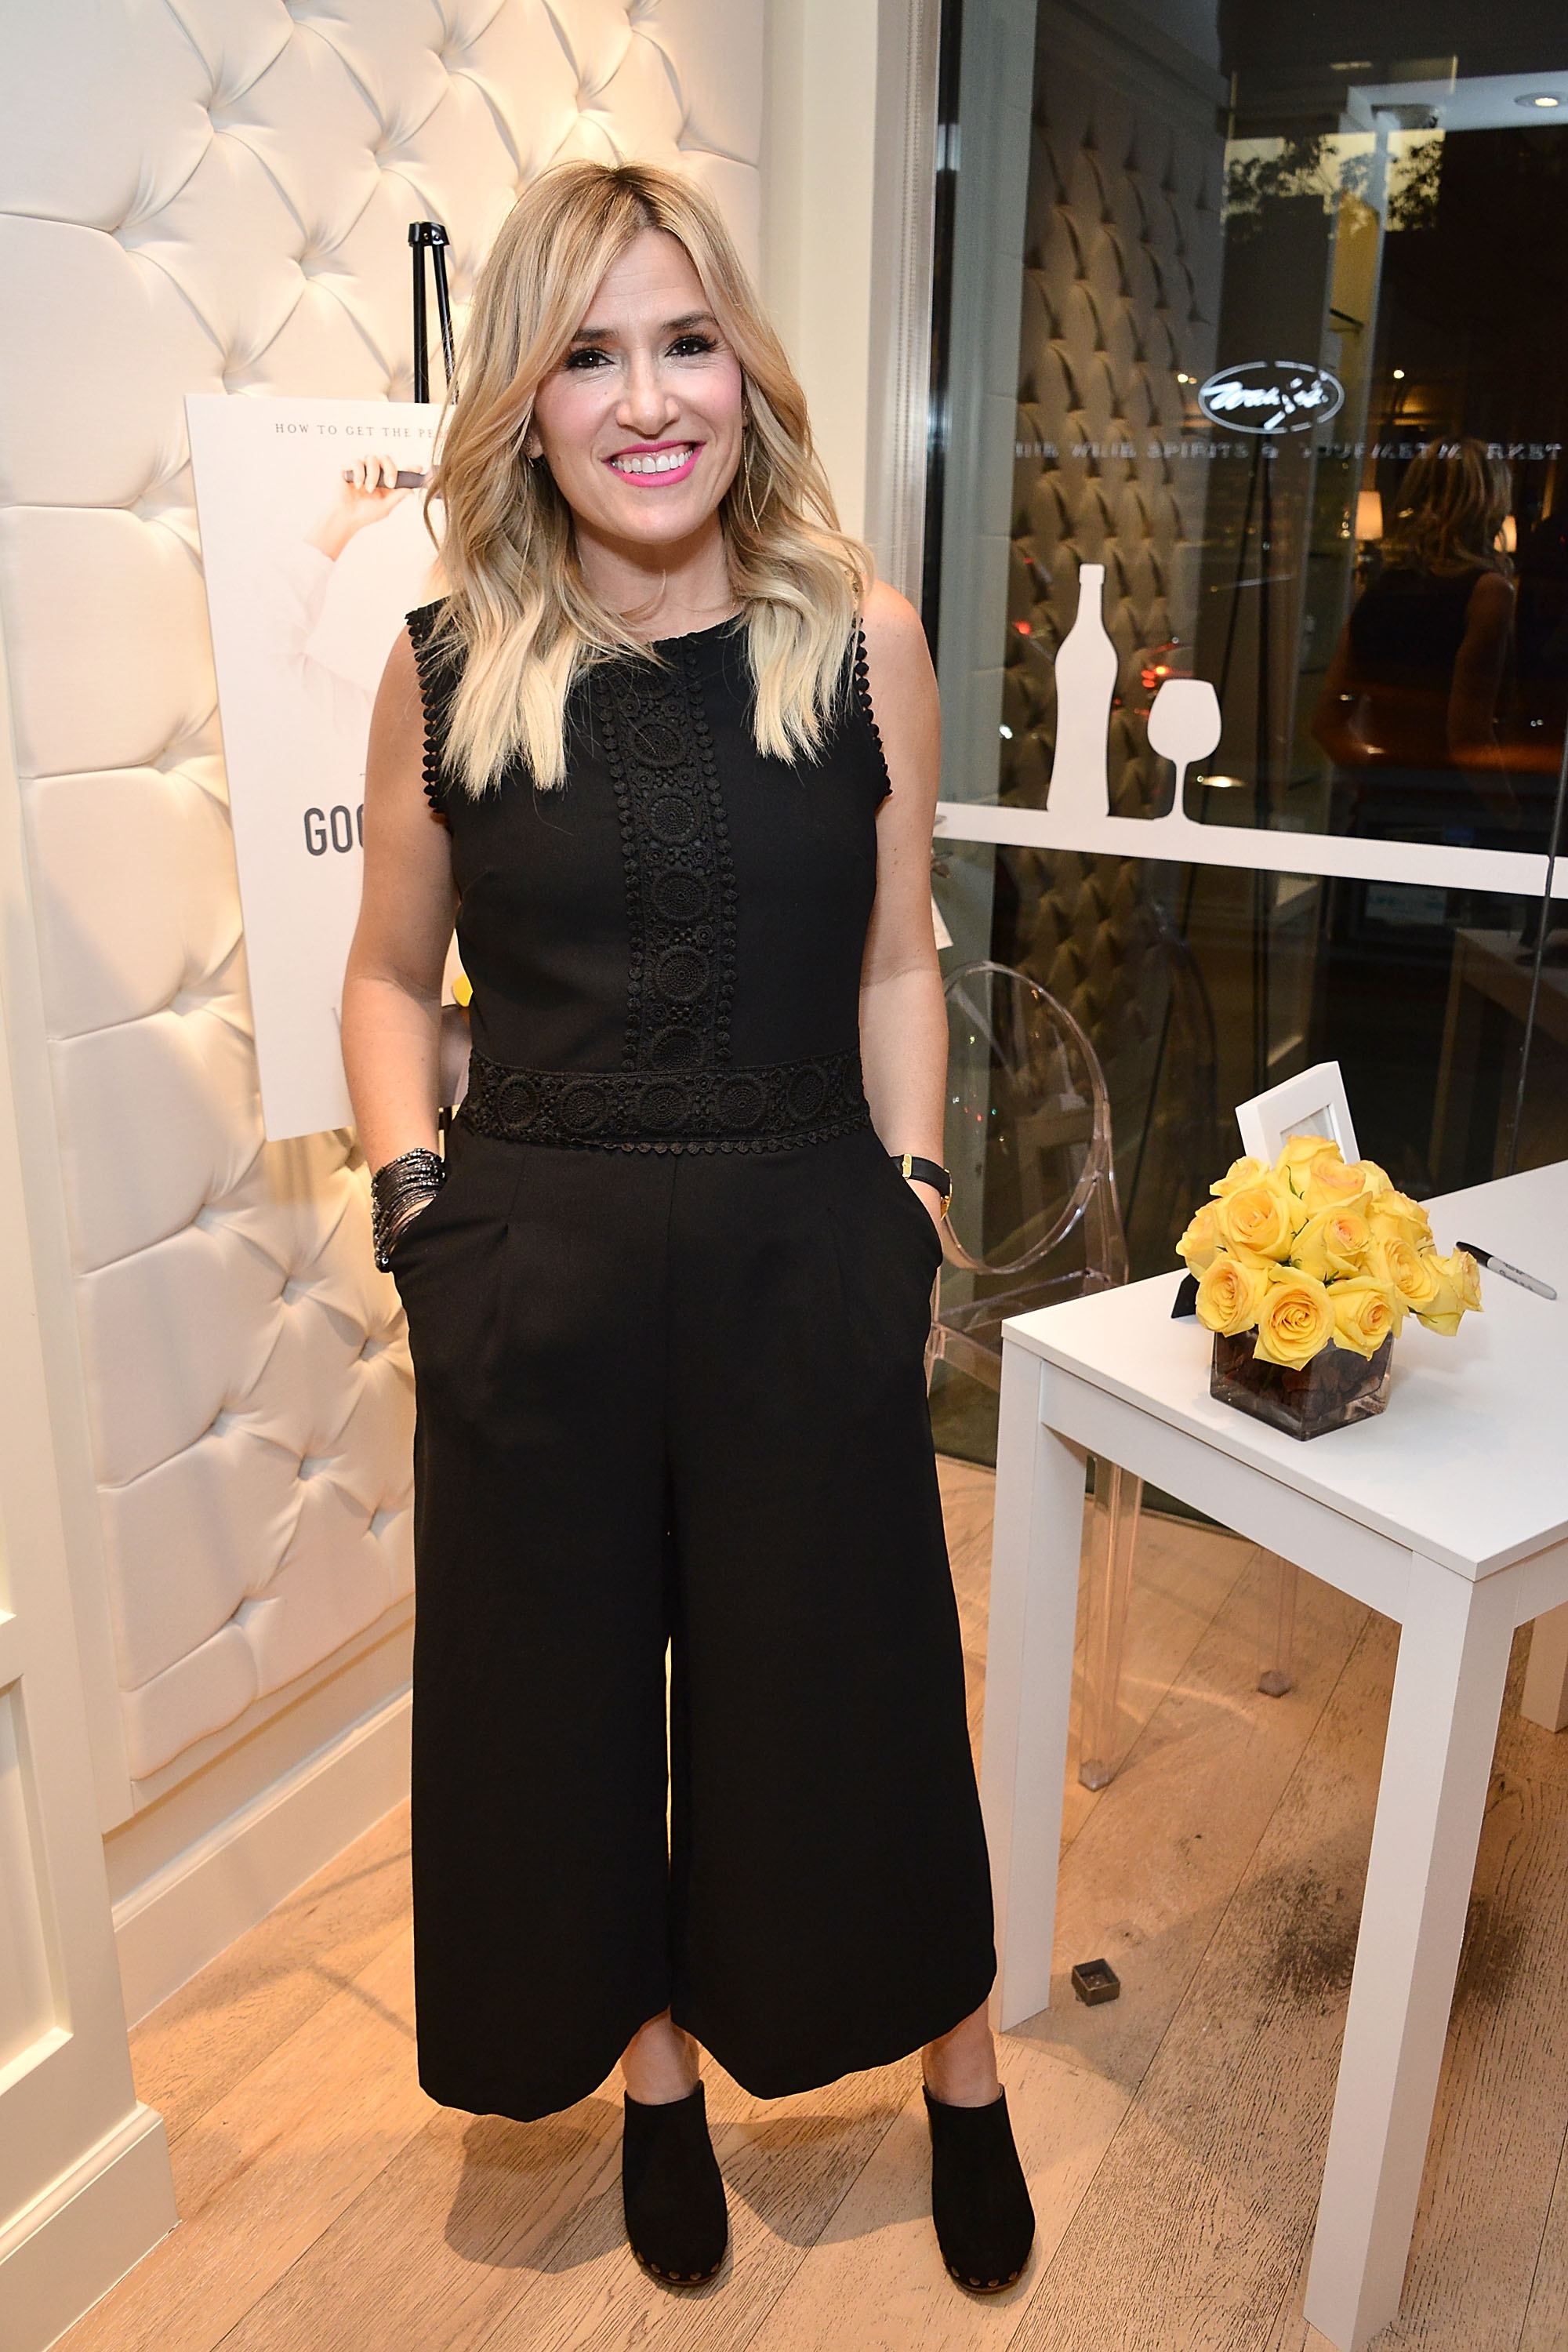 BEVERLY HILLS, CA - OCTOBER 20:  Alli Webb attends the the LA Launch of Alli Webb's book  The Drybar Guide to Good Hair For All  at Drybar Beverly Hills on October 20, 2016 in Beverly Hills, California.  (Photo by Araya Diaz/WireImage)